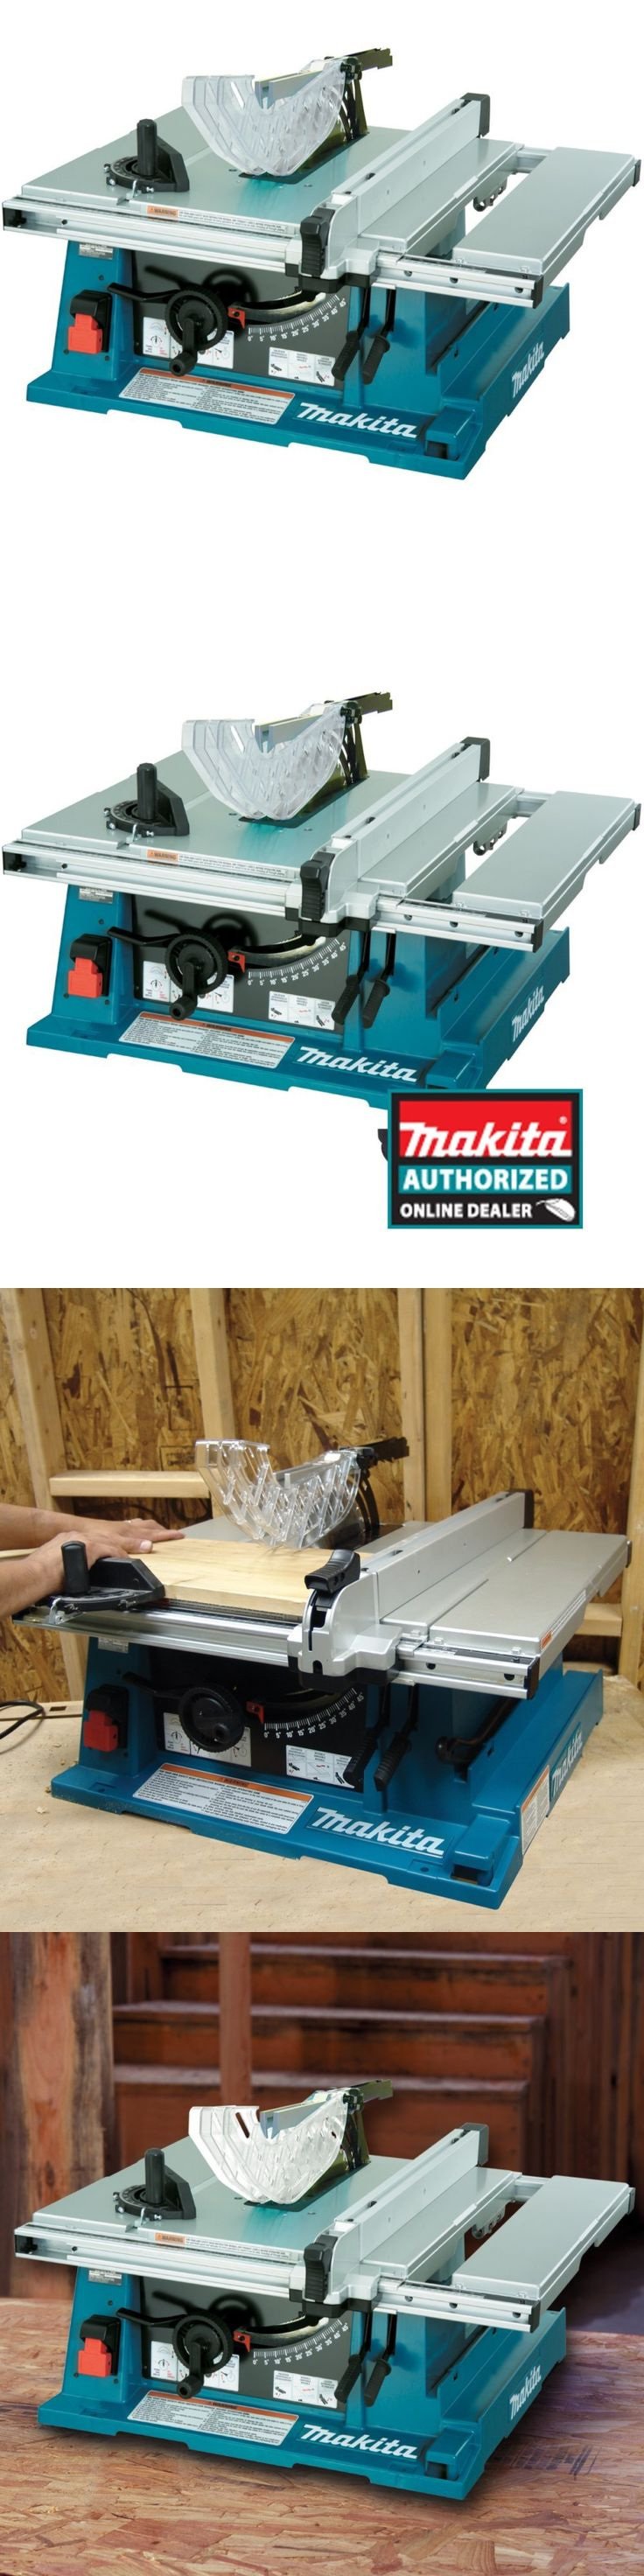 Table Saws 122835: Makita 2705 10-Inch Contractor Table Saw -> BUY IT NOW ONLY: $607.57 on eBay!